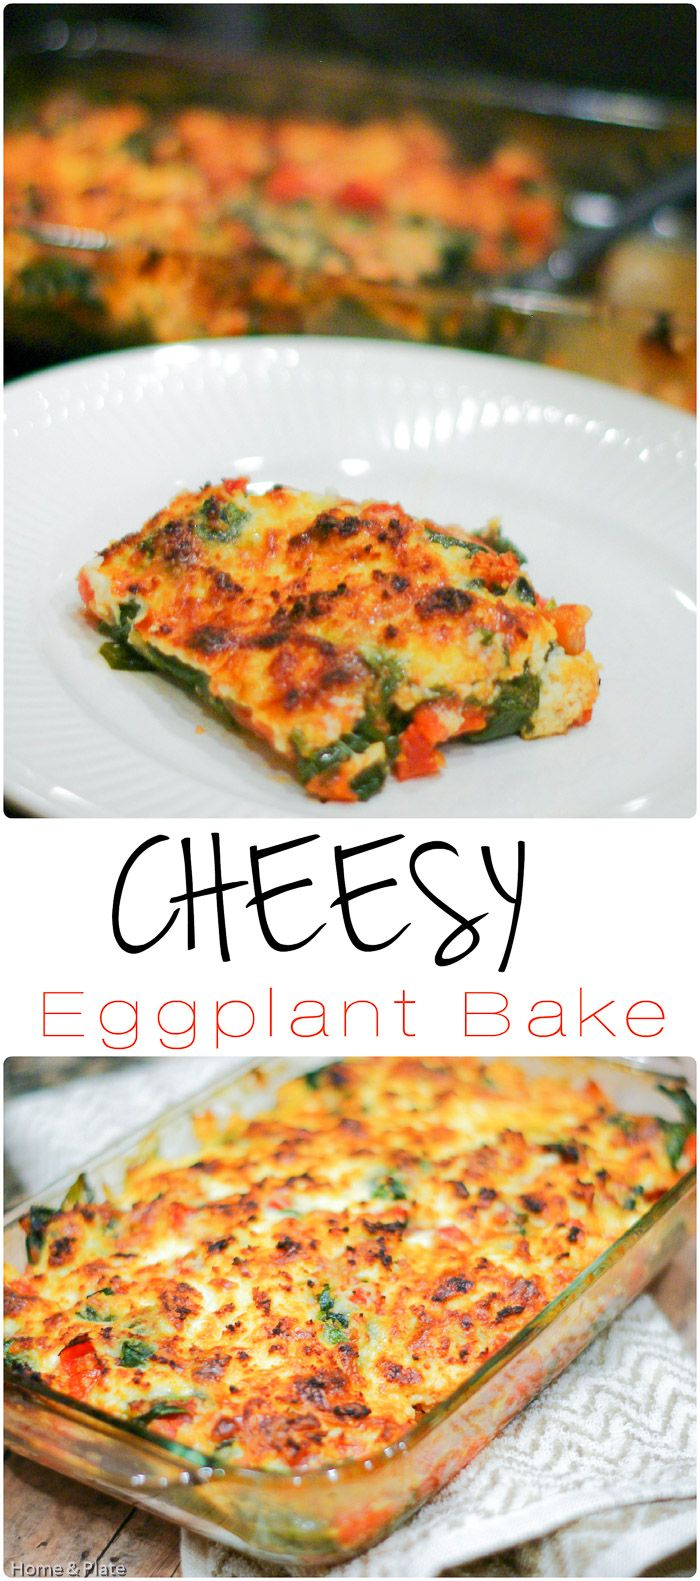 Cheesy Eggplant Bake | Home & Plate | www.homeandplate.com | Roasted eggplant, juicy red tomatoes and fiber rich baby spinach come together deliciously.